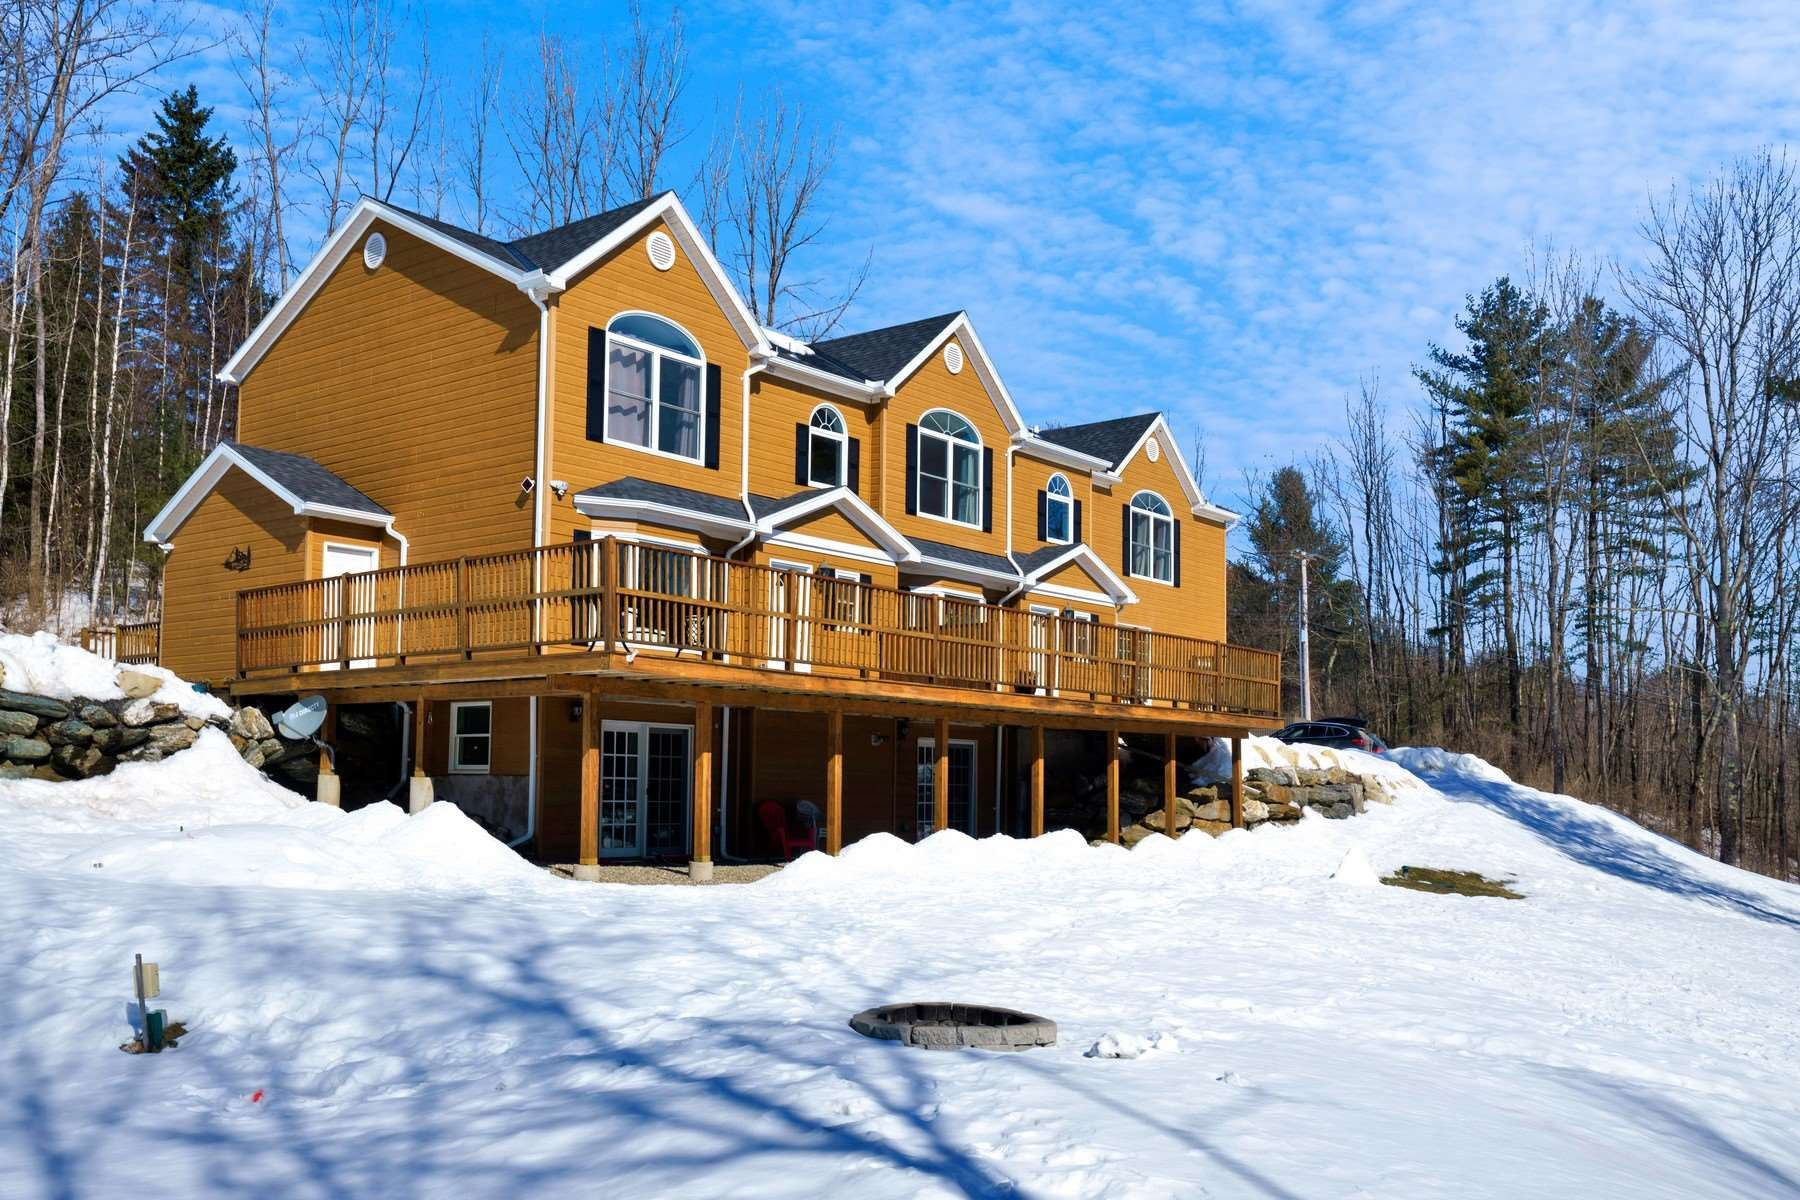 Photo of 182 Cady Hill Road, Stowe, VT 05672 (MLS # 4852633)